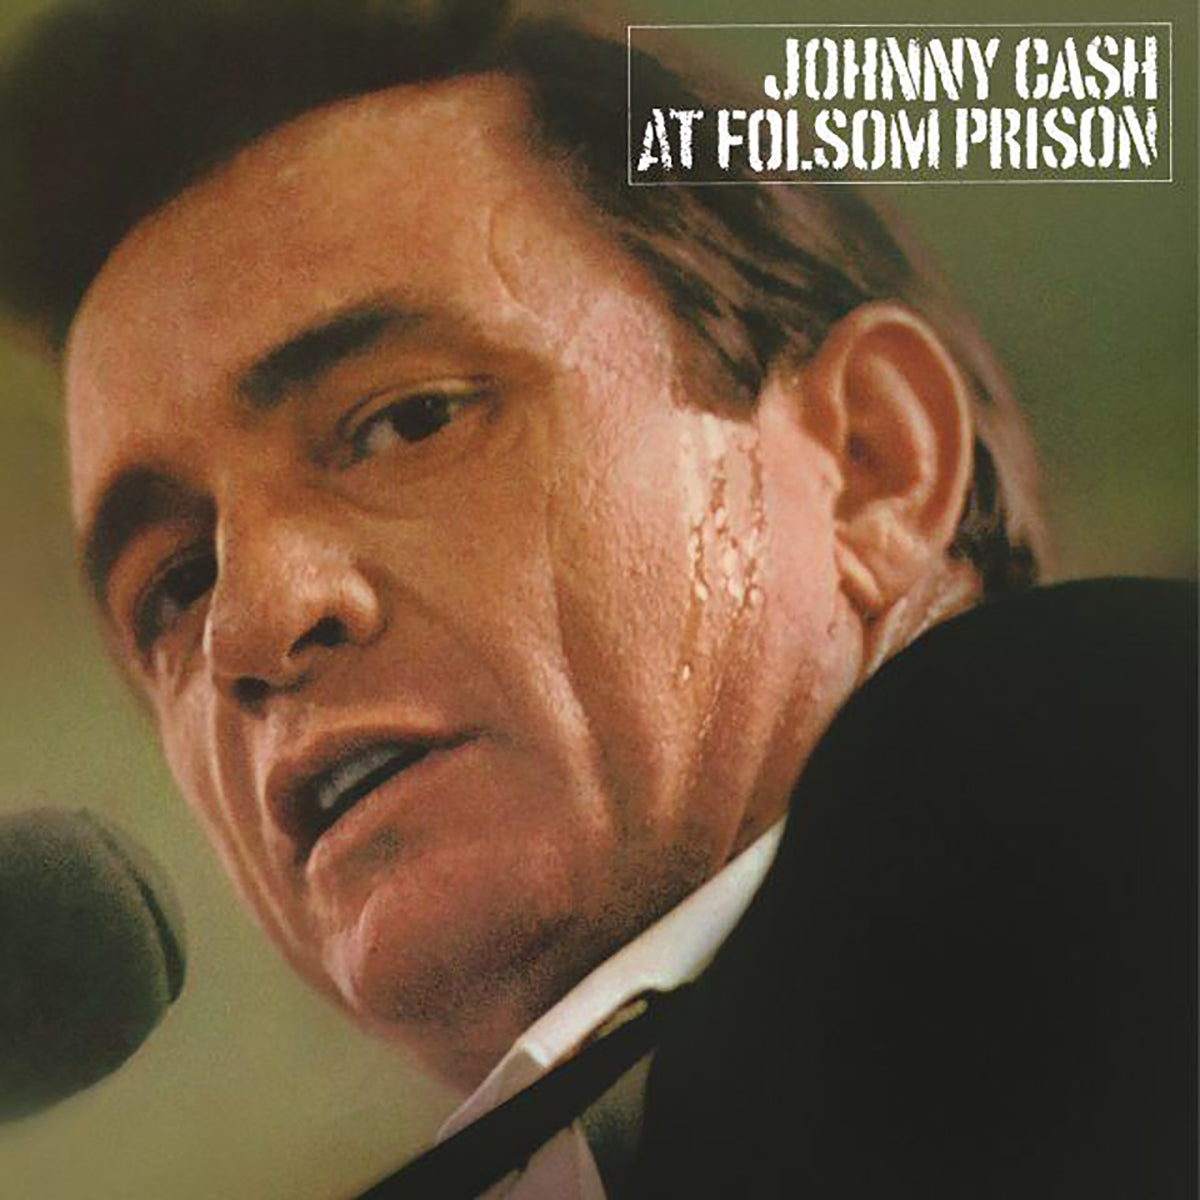 Johnny Cash: At Folsom Prison - Legacy Edition Vinyl 5LP Boxset (Record Store Day)